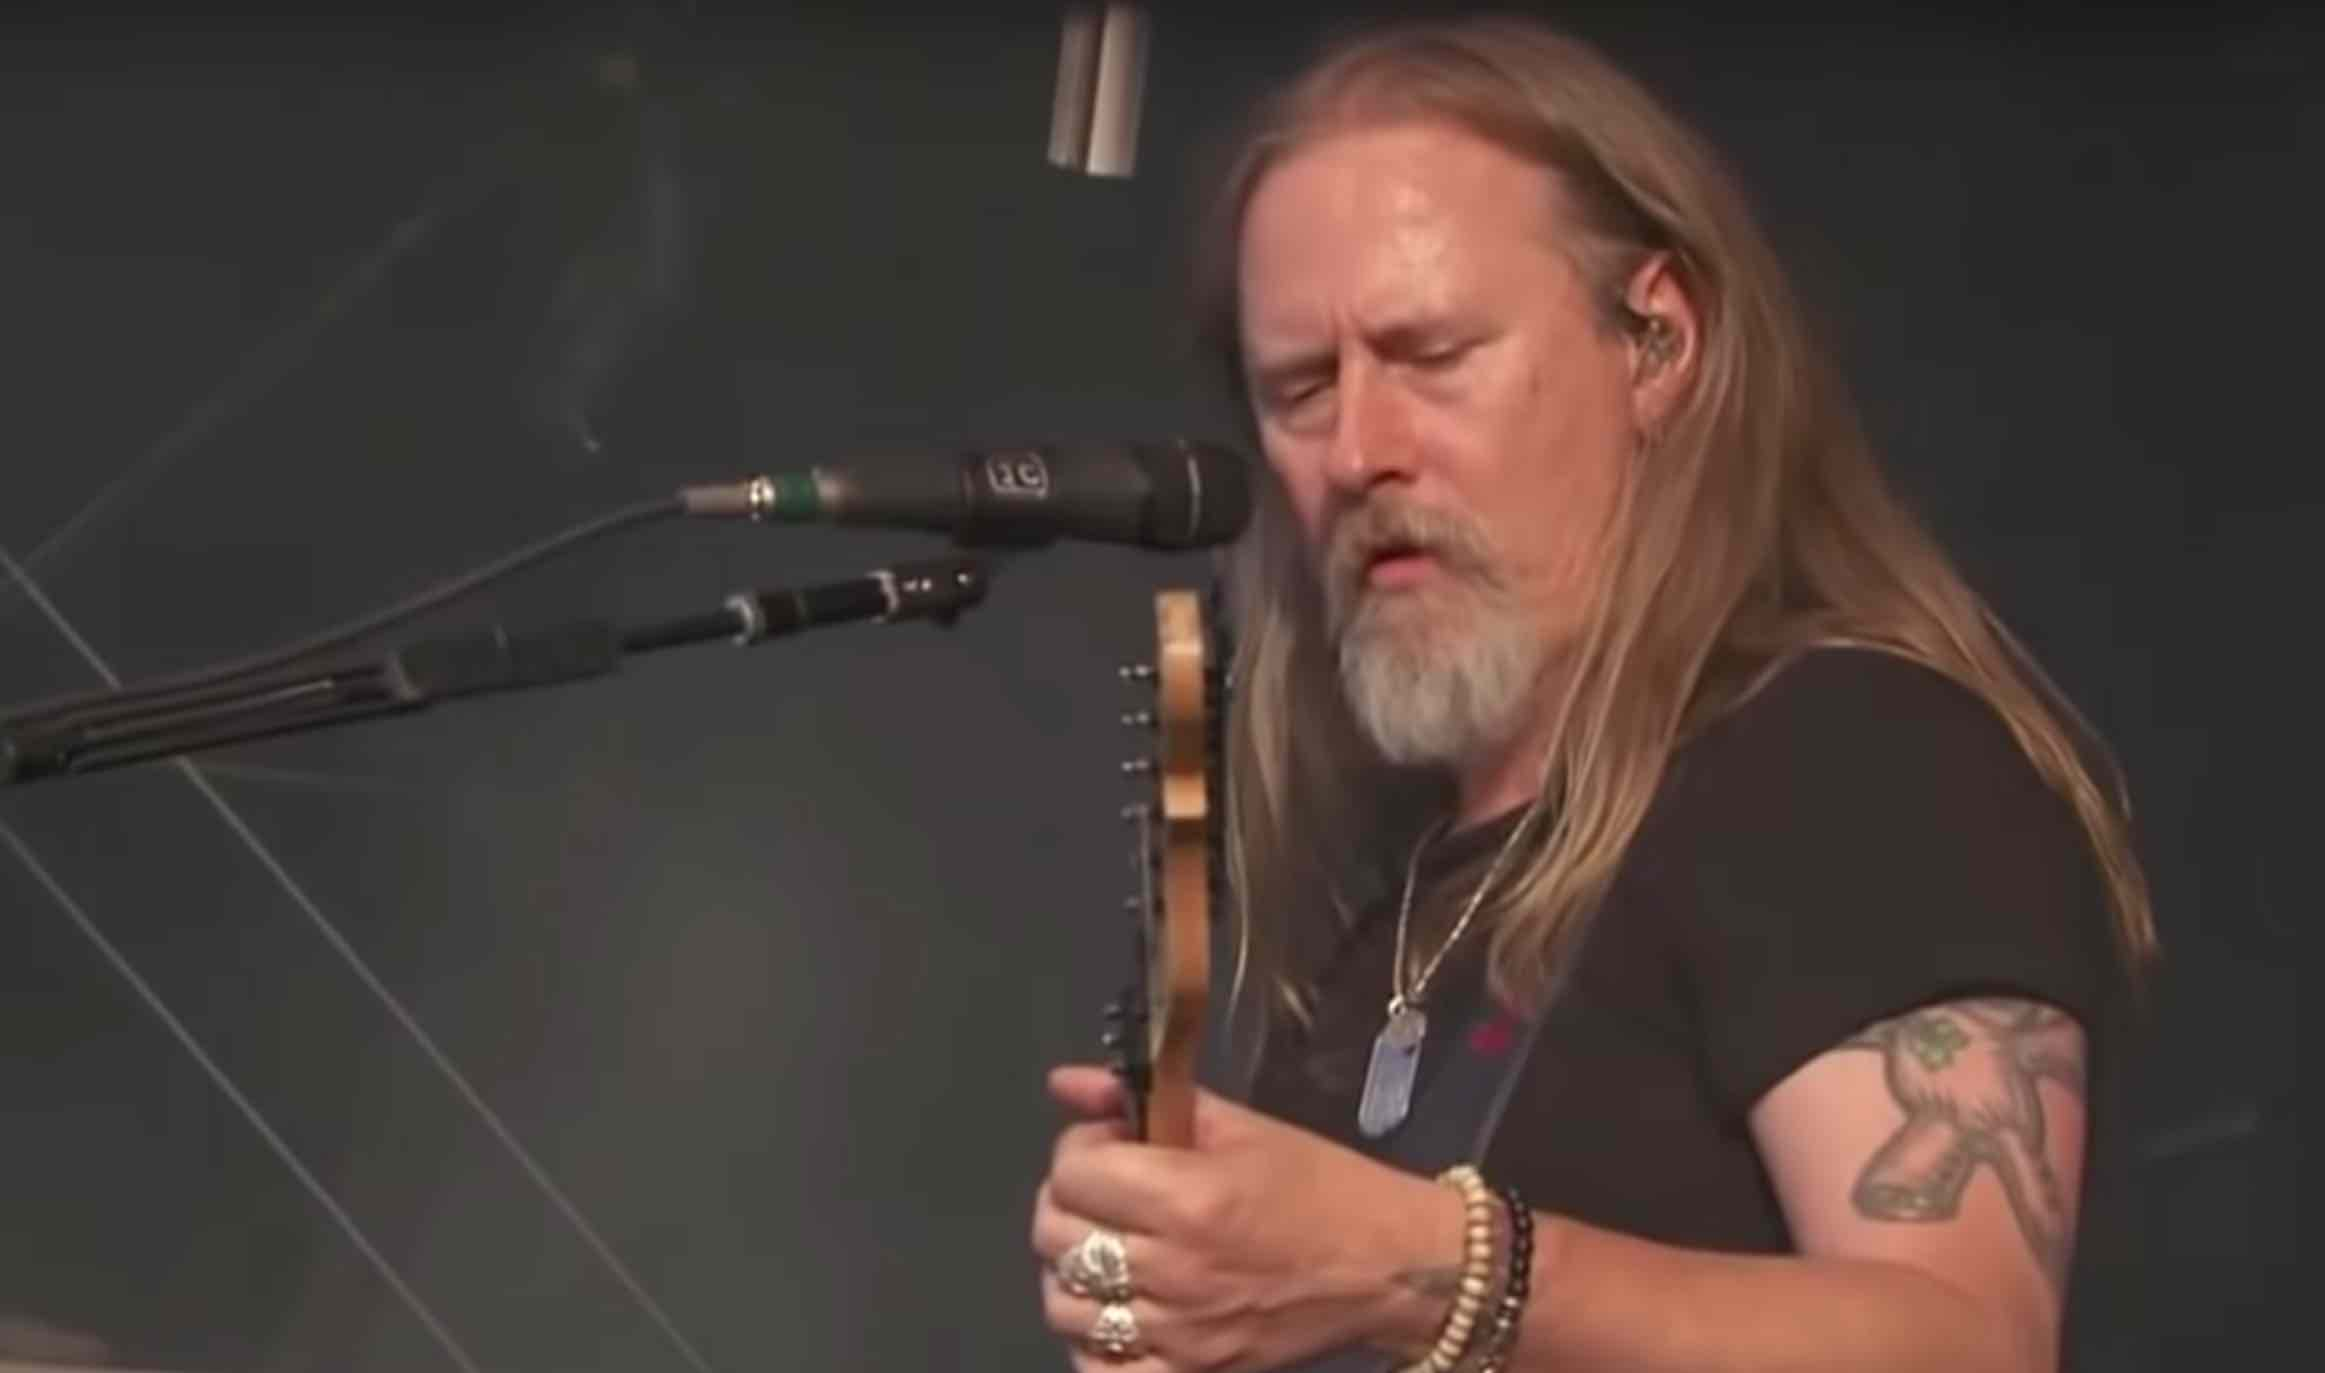 Alice In Chains' Jerry Cantrell Stunning Shirtless Photo Revealed ...